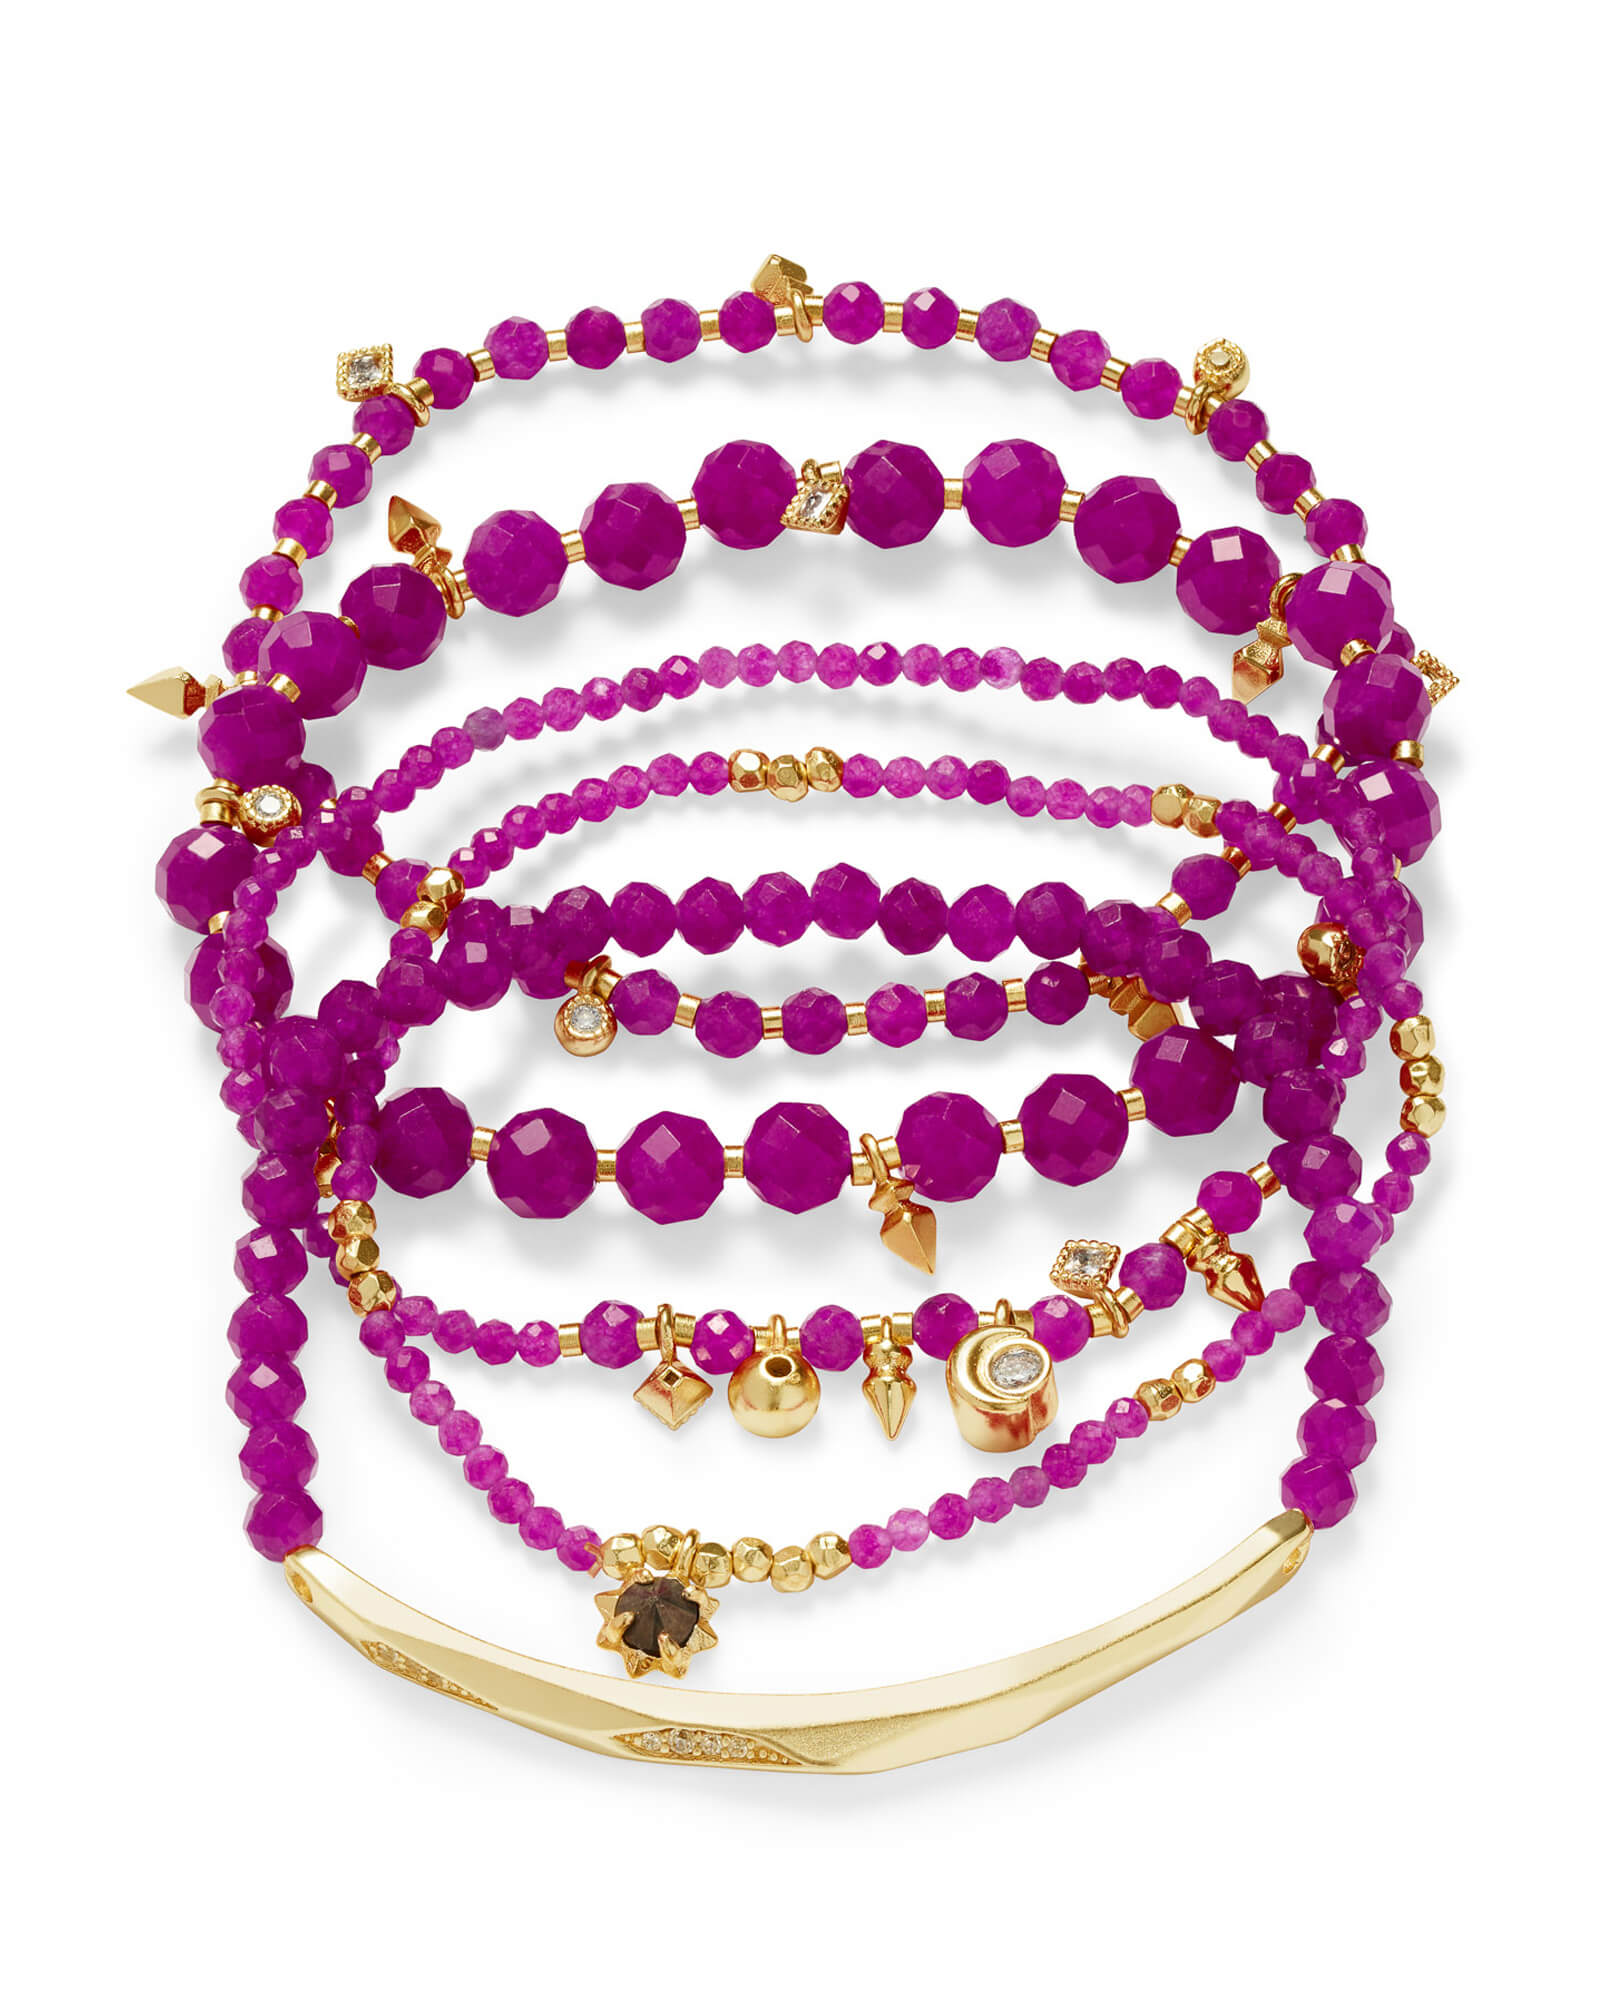 Supak Gold Beaded Bracelet Set in Purple Jade